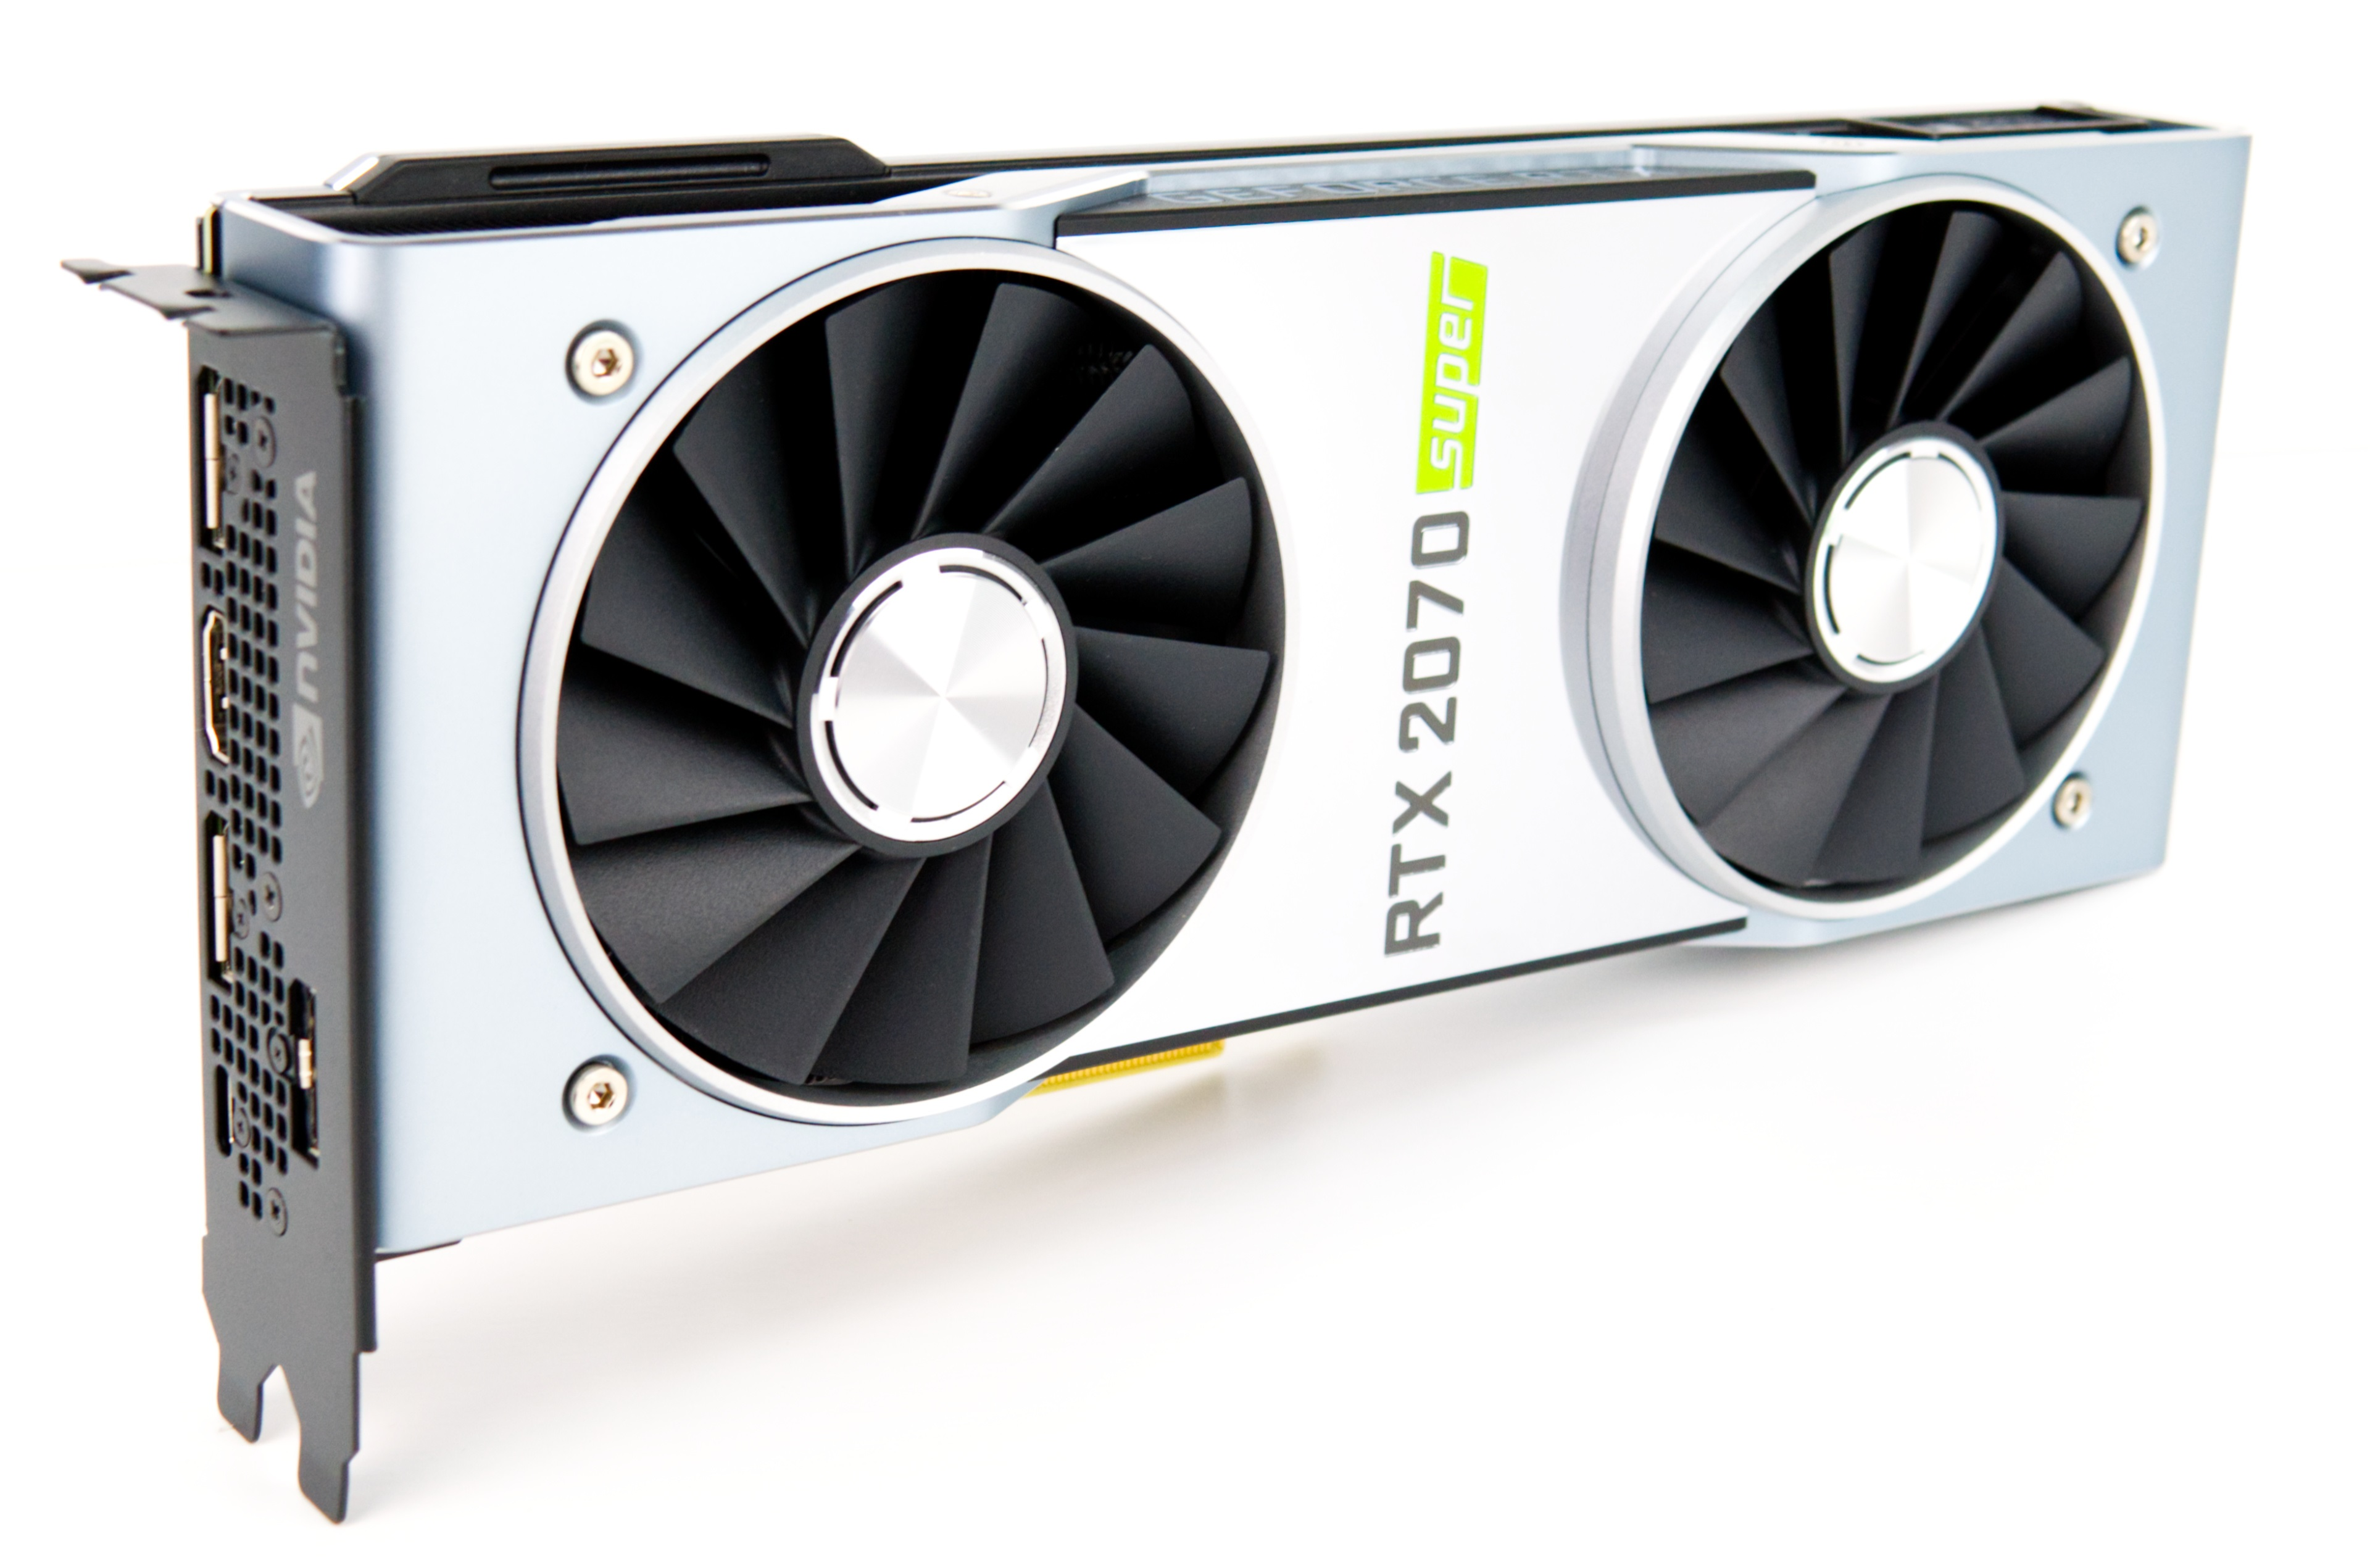 Видеокарта NVIDIA GeForce RTX 2070 SUPER. Обзор от Notebookcheck